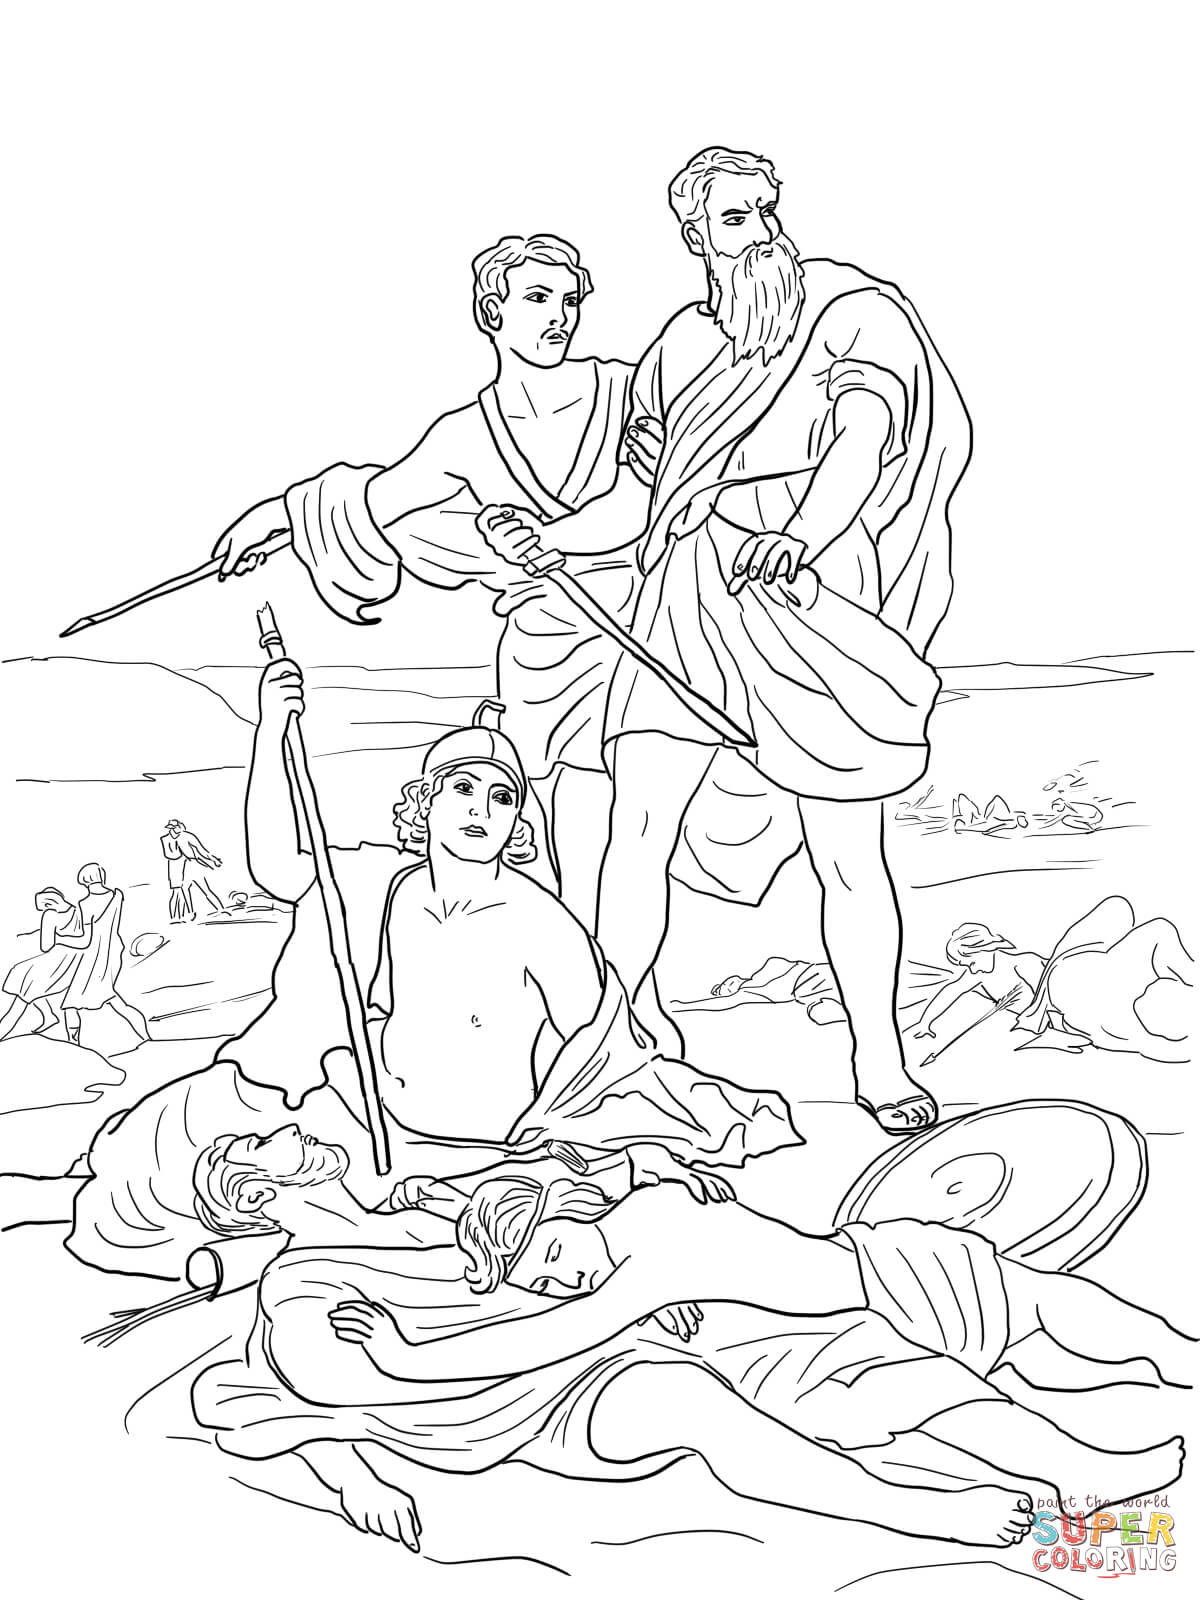 bible coloring pages king saul saul anointed with images coloring pages bible class bible king pages coloring saul